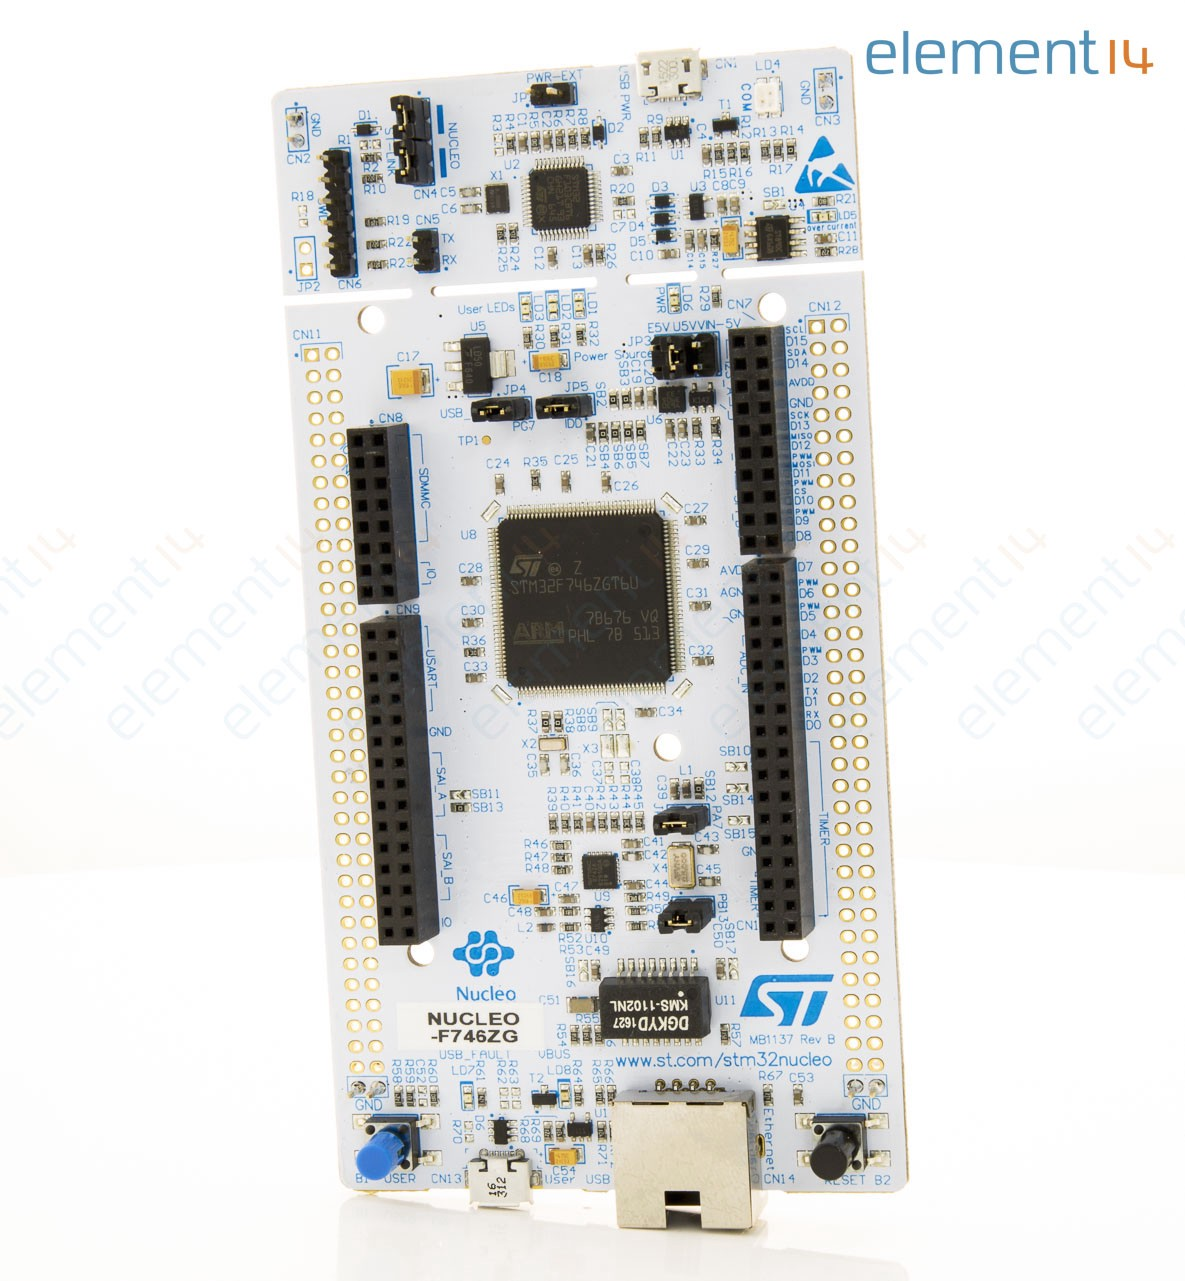 Using Roboclaw motor controller with Stm32 Micro-controller